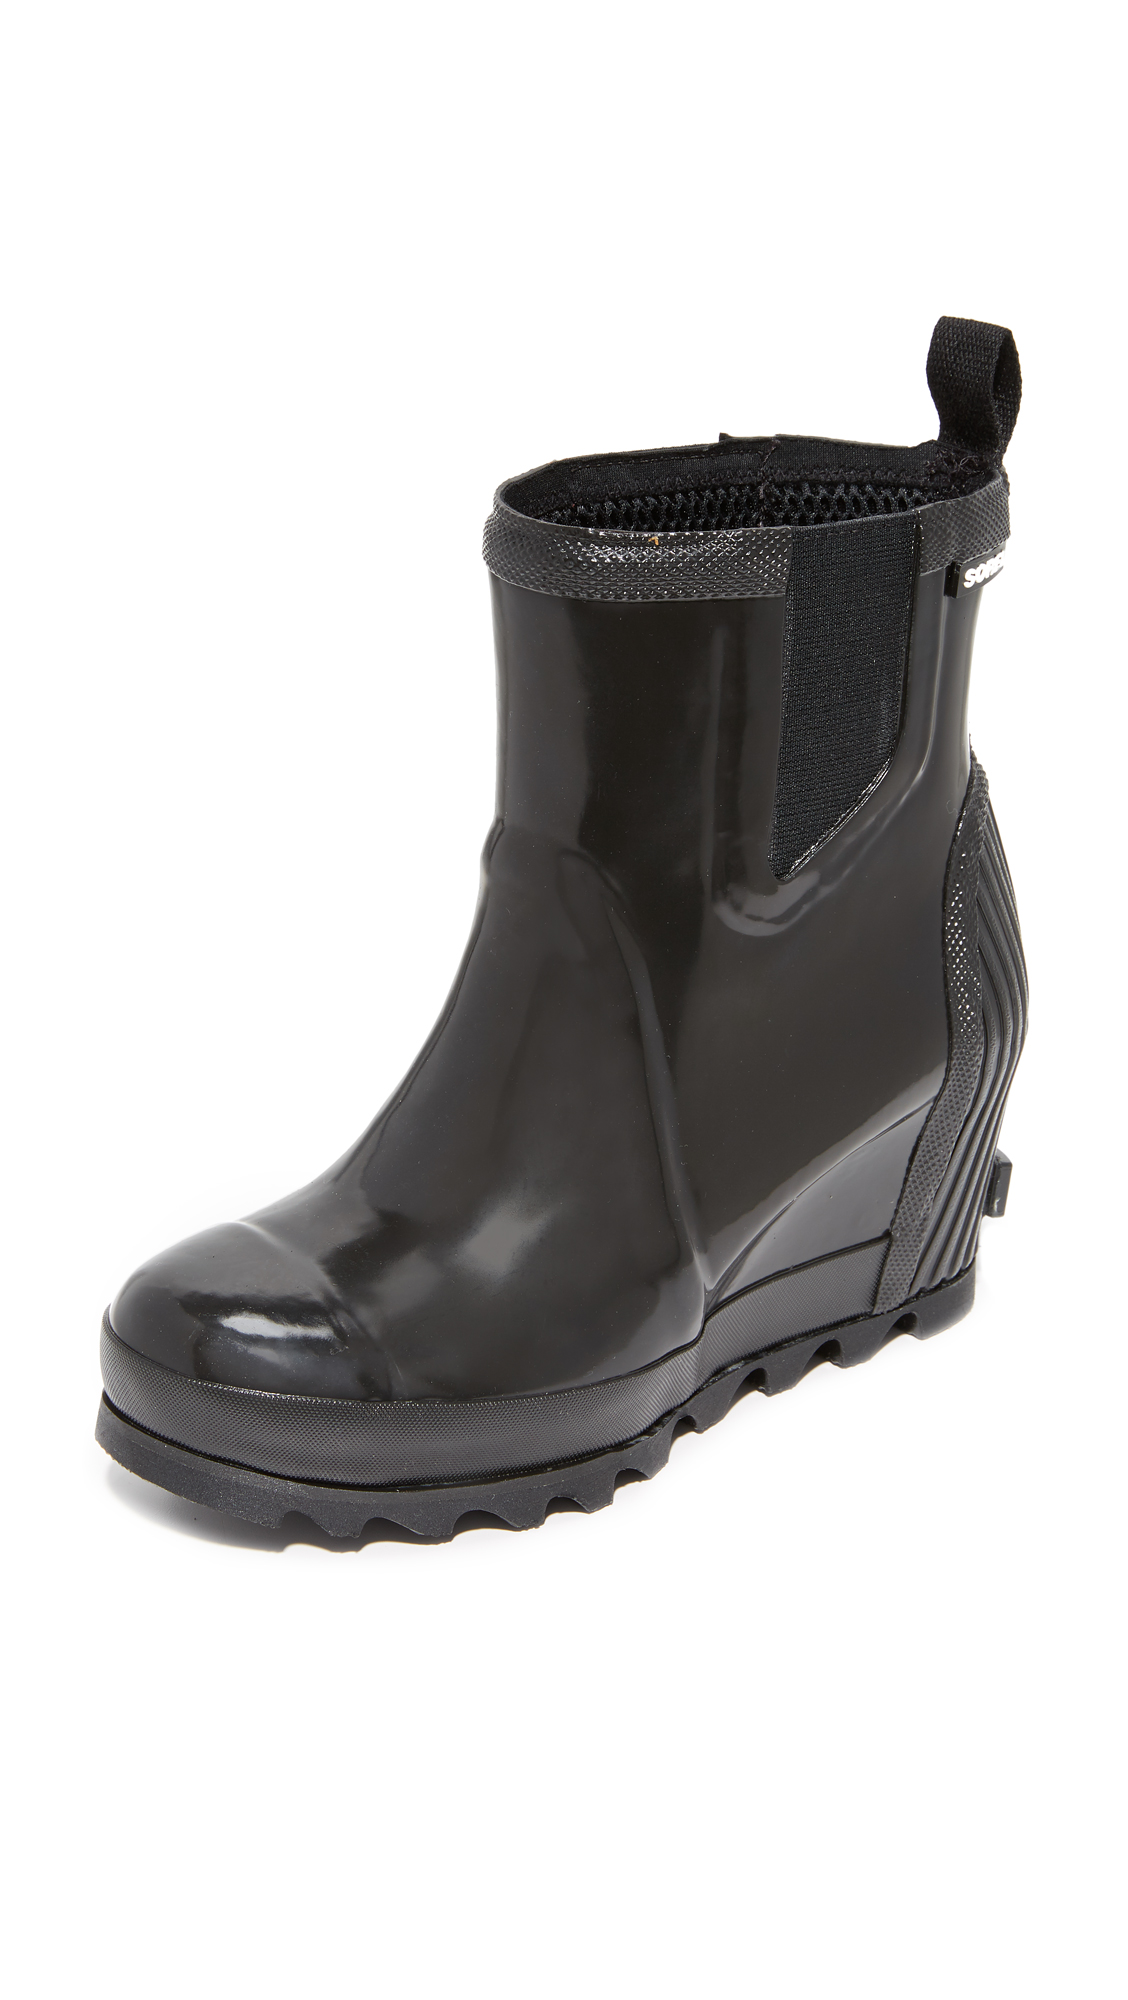 Sorel Joan Rain Wedge Chelsea Gloss Rain Booties - Black/Sea Salt